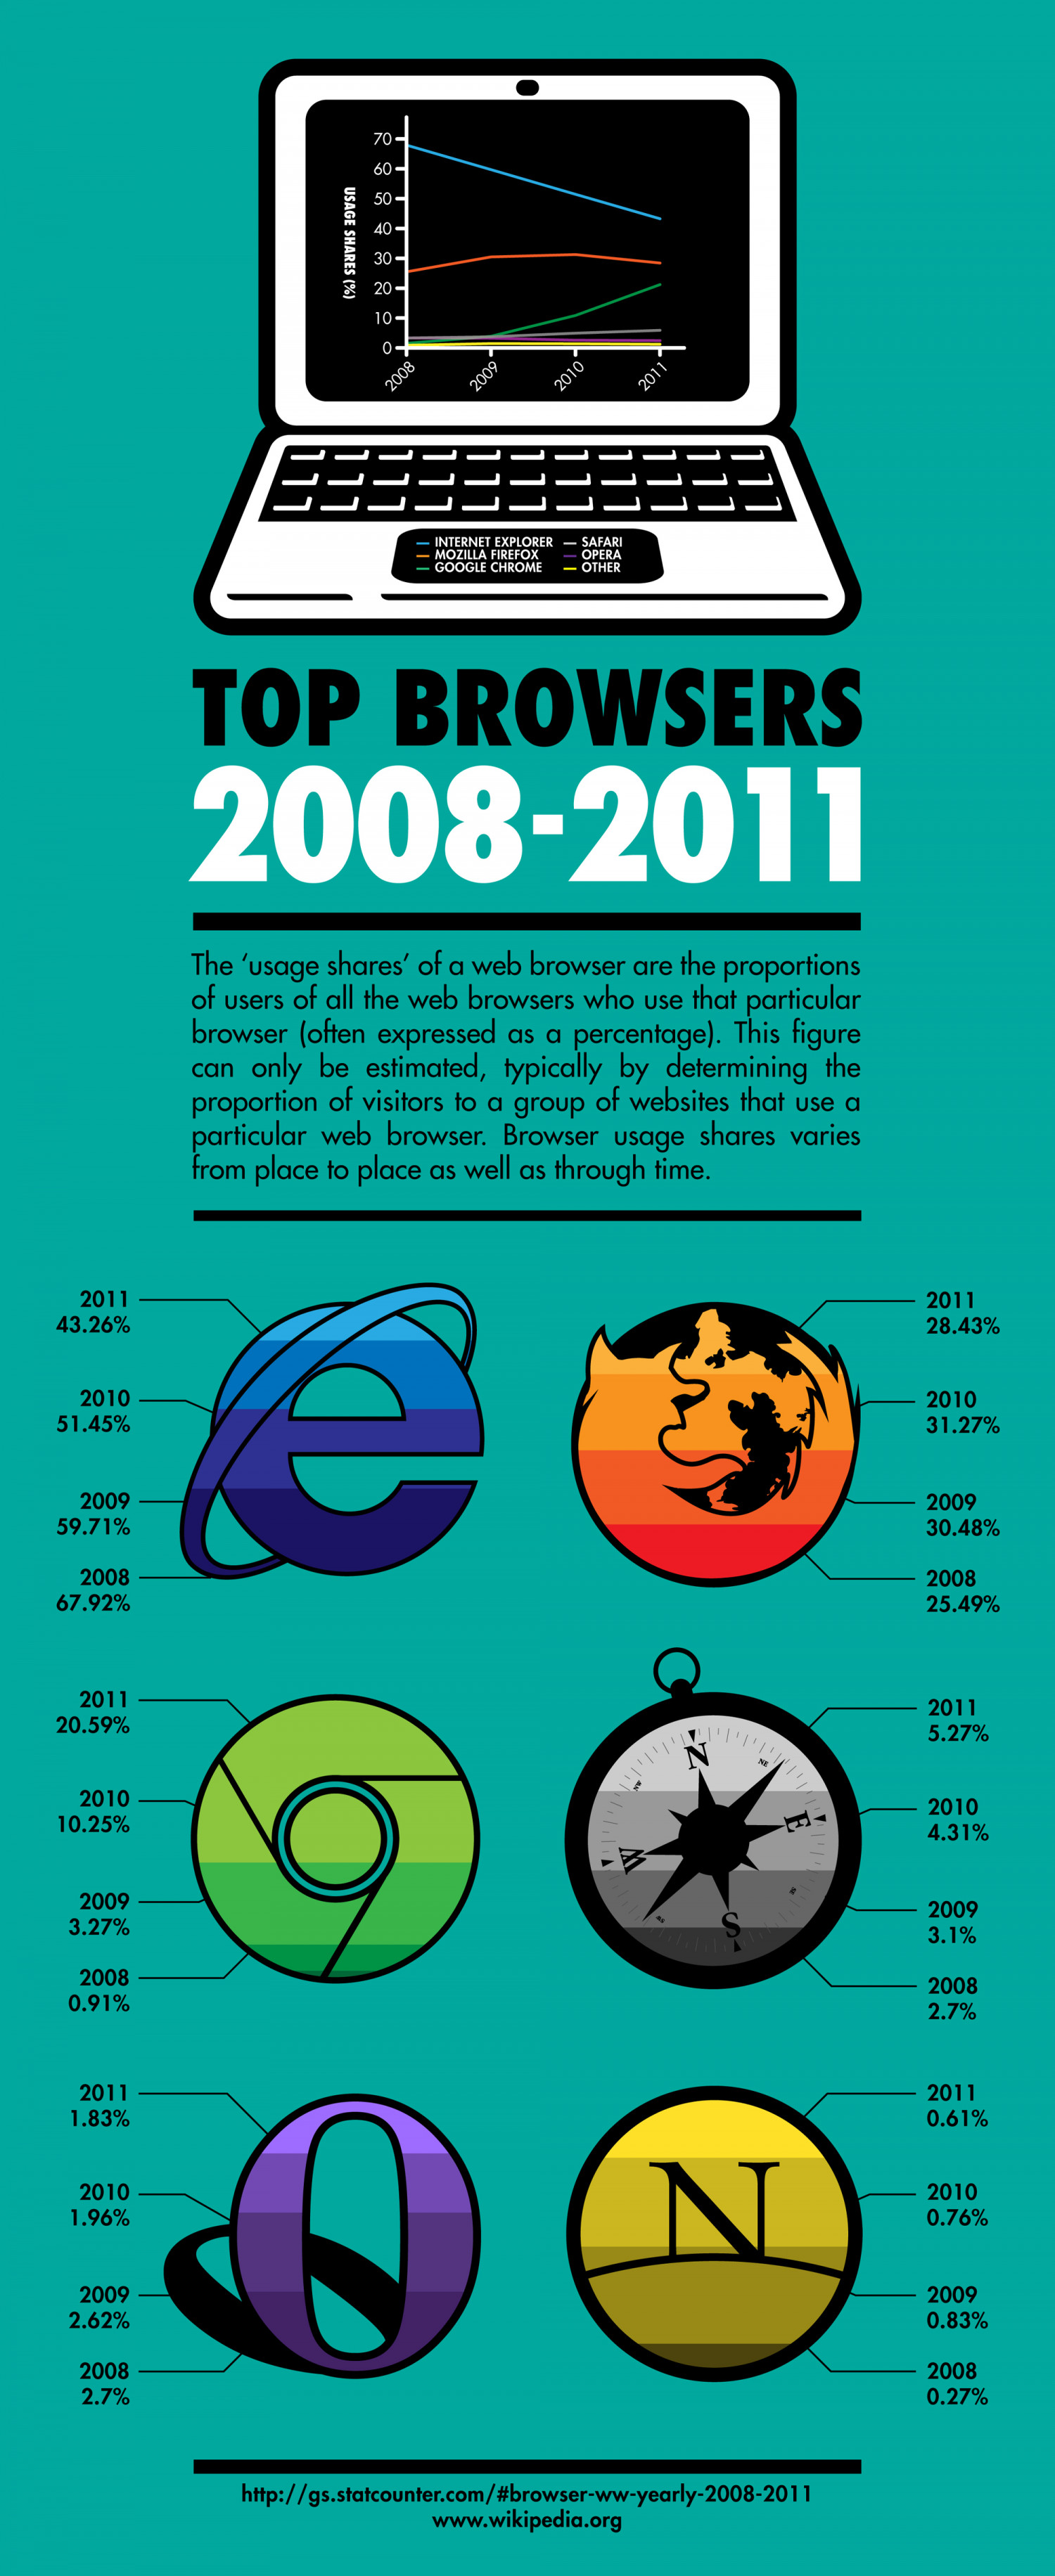 Browser Wars - Top Browsers 2008-2011 Infographic